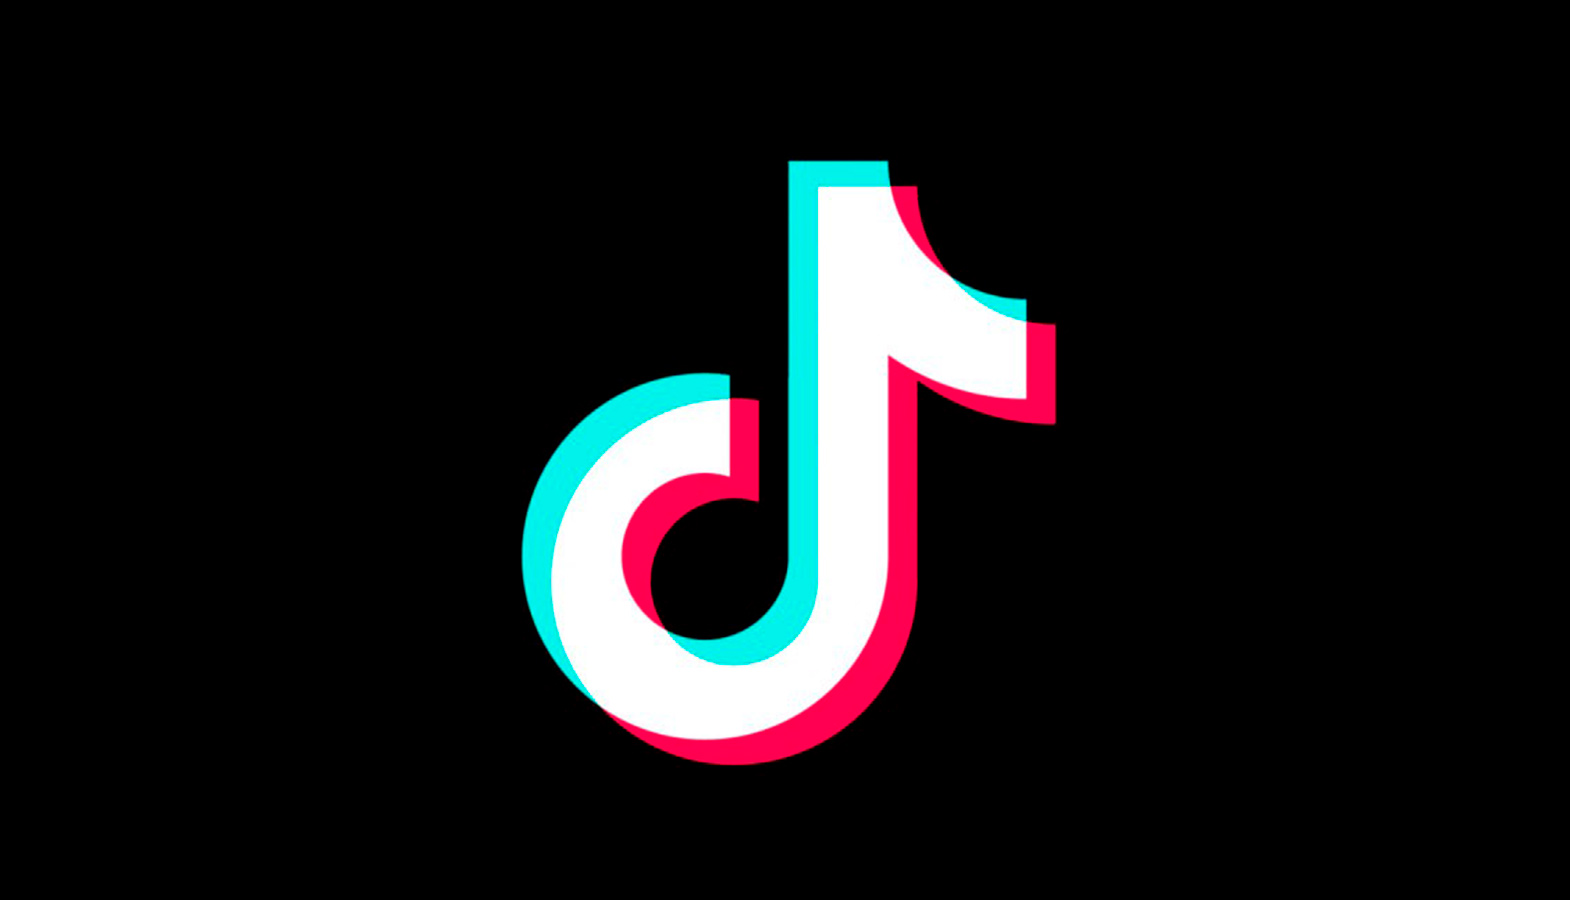 Twitter Held Preliminary Talks About Merging With TikTok